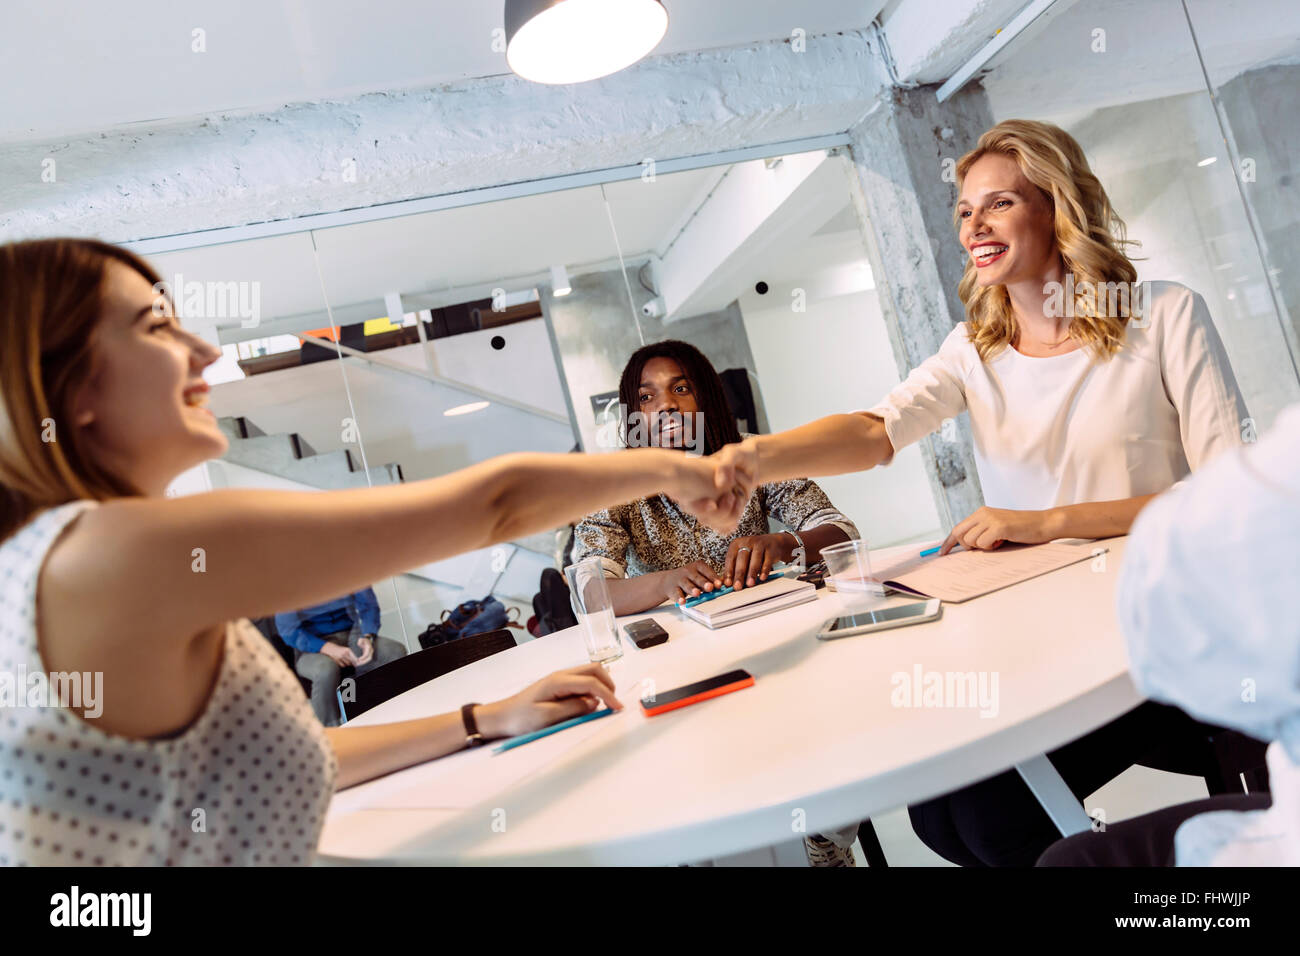 Female coworkers shaking hands and greeting each other while sitting at a table - Stock Image